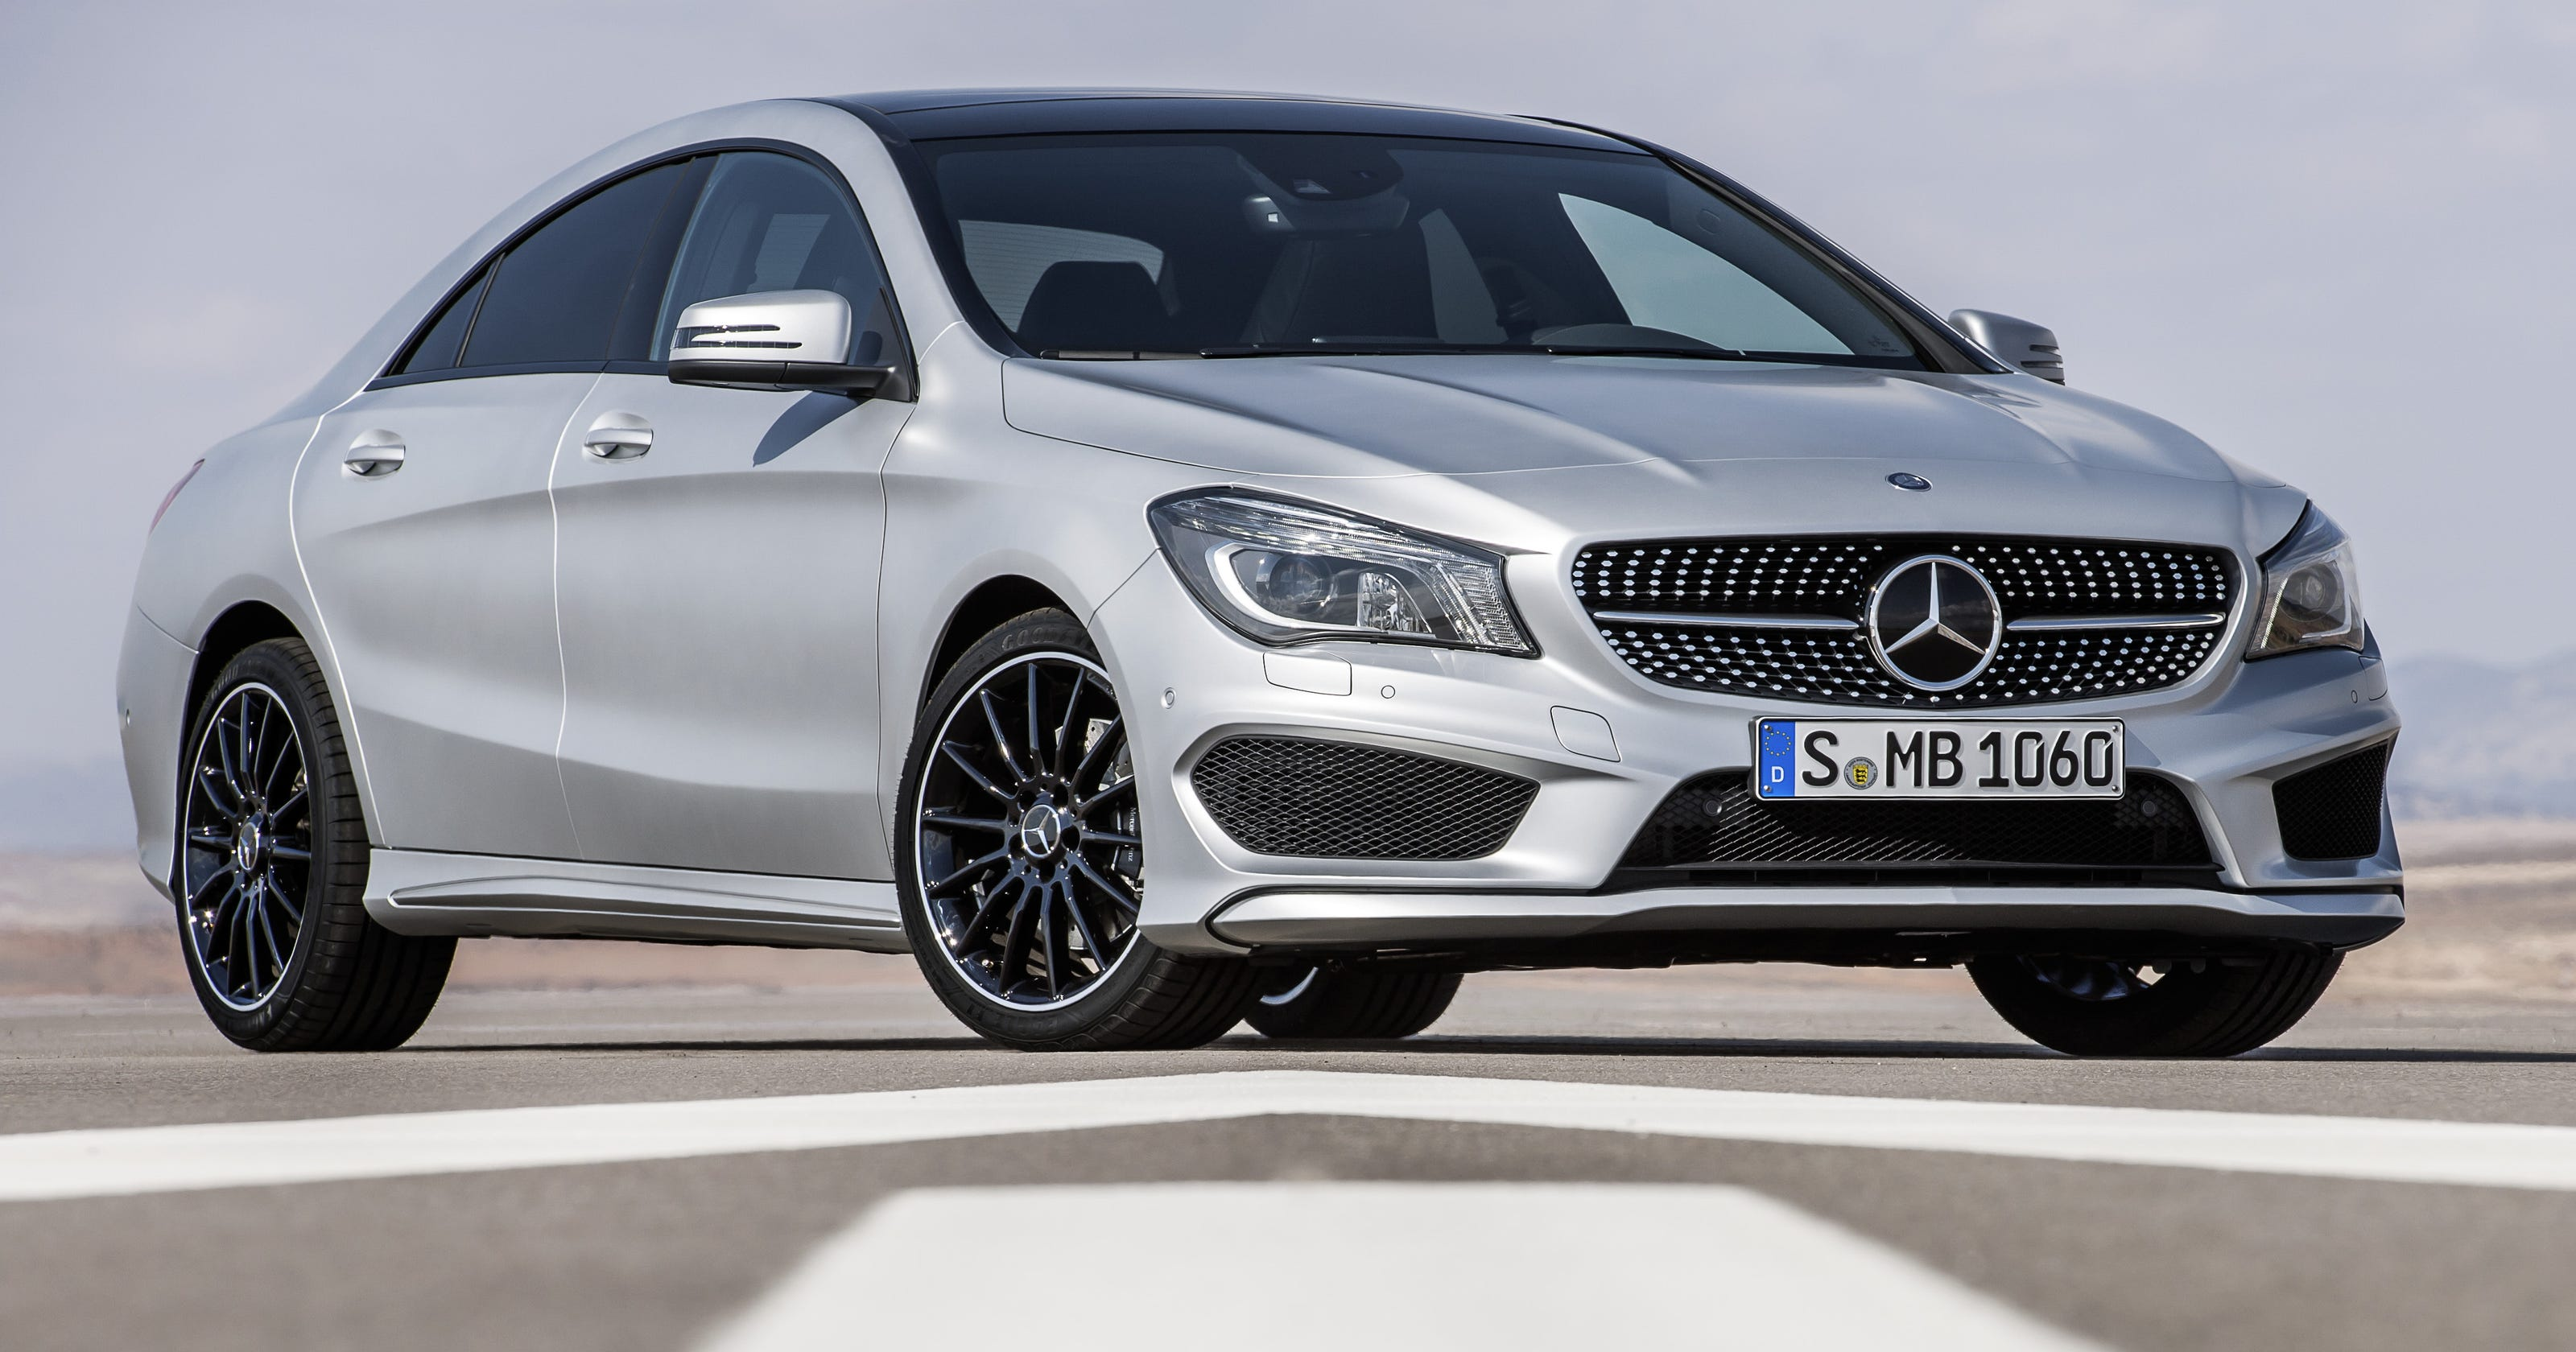 Test Drive: 'Bargain' Mercedes CLA disappoints